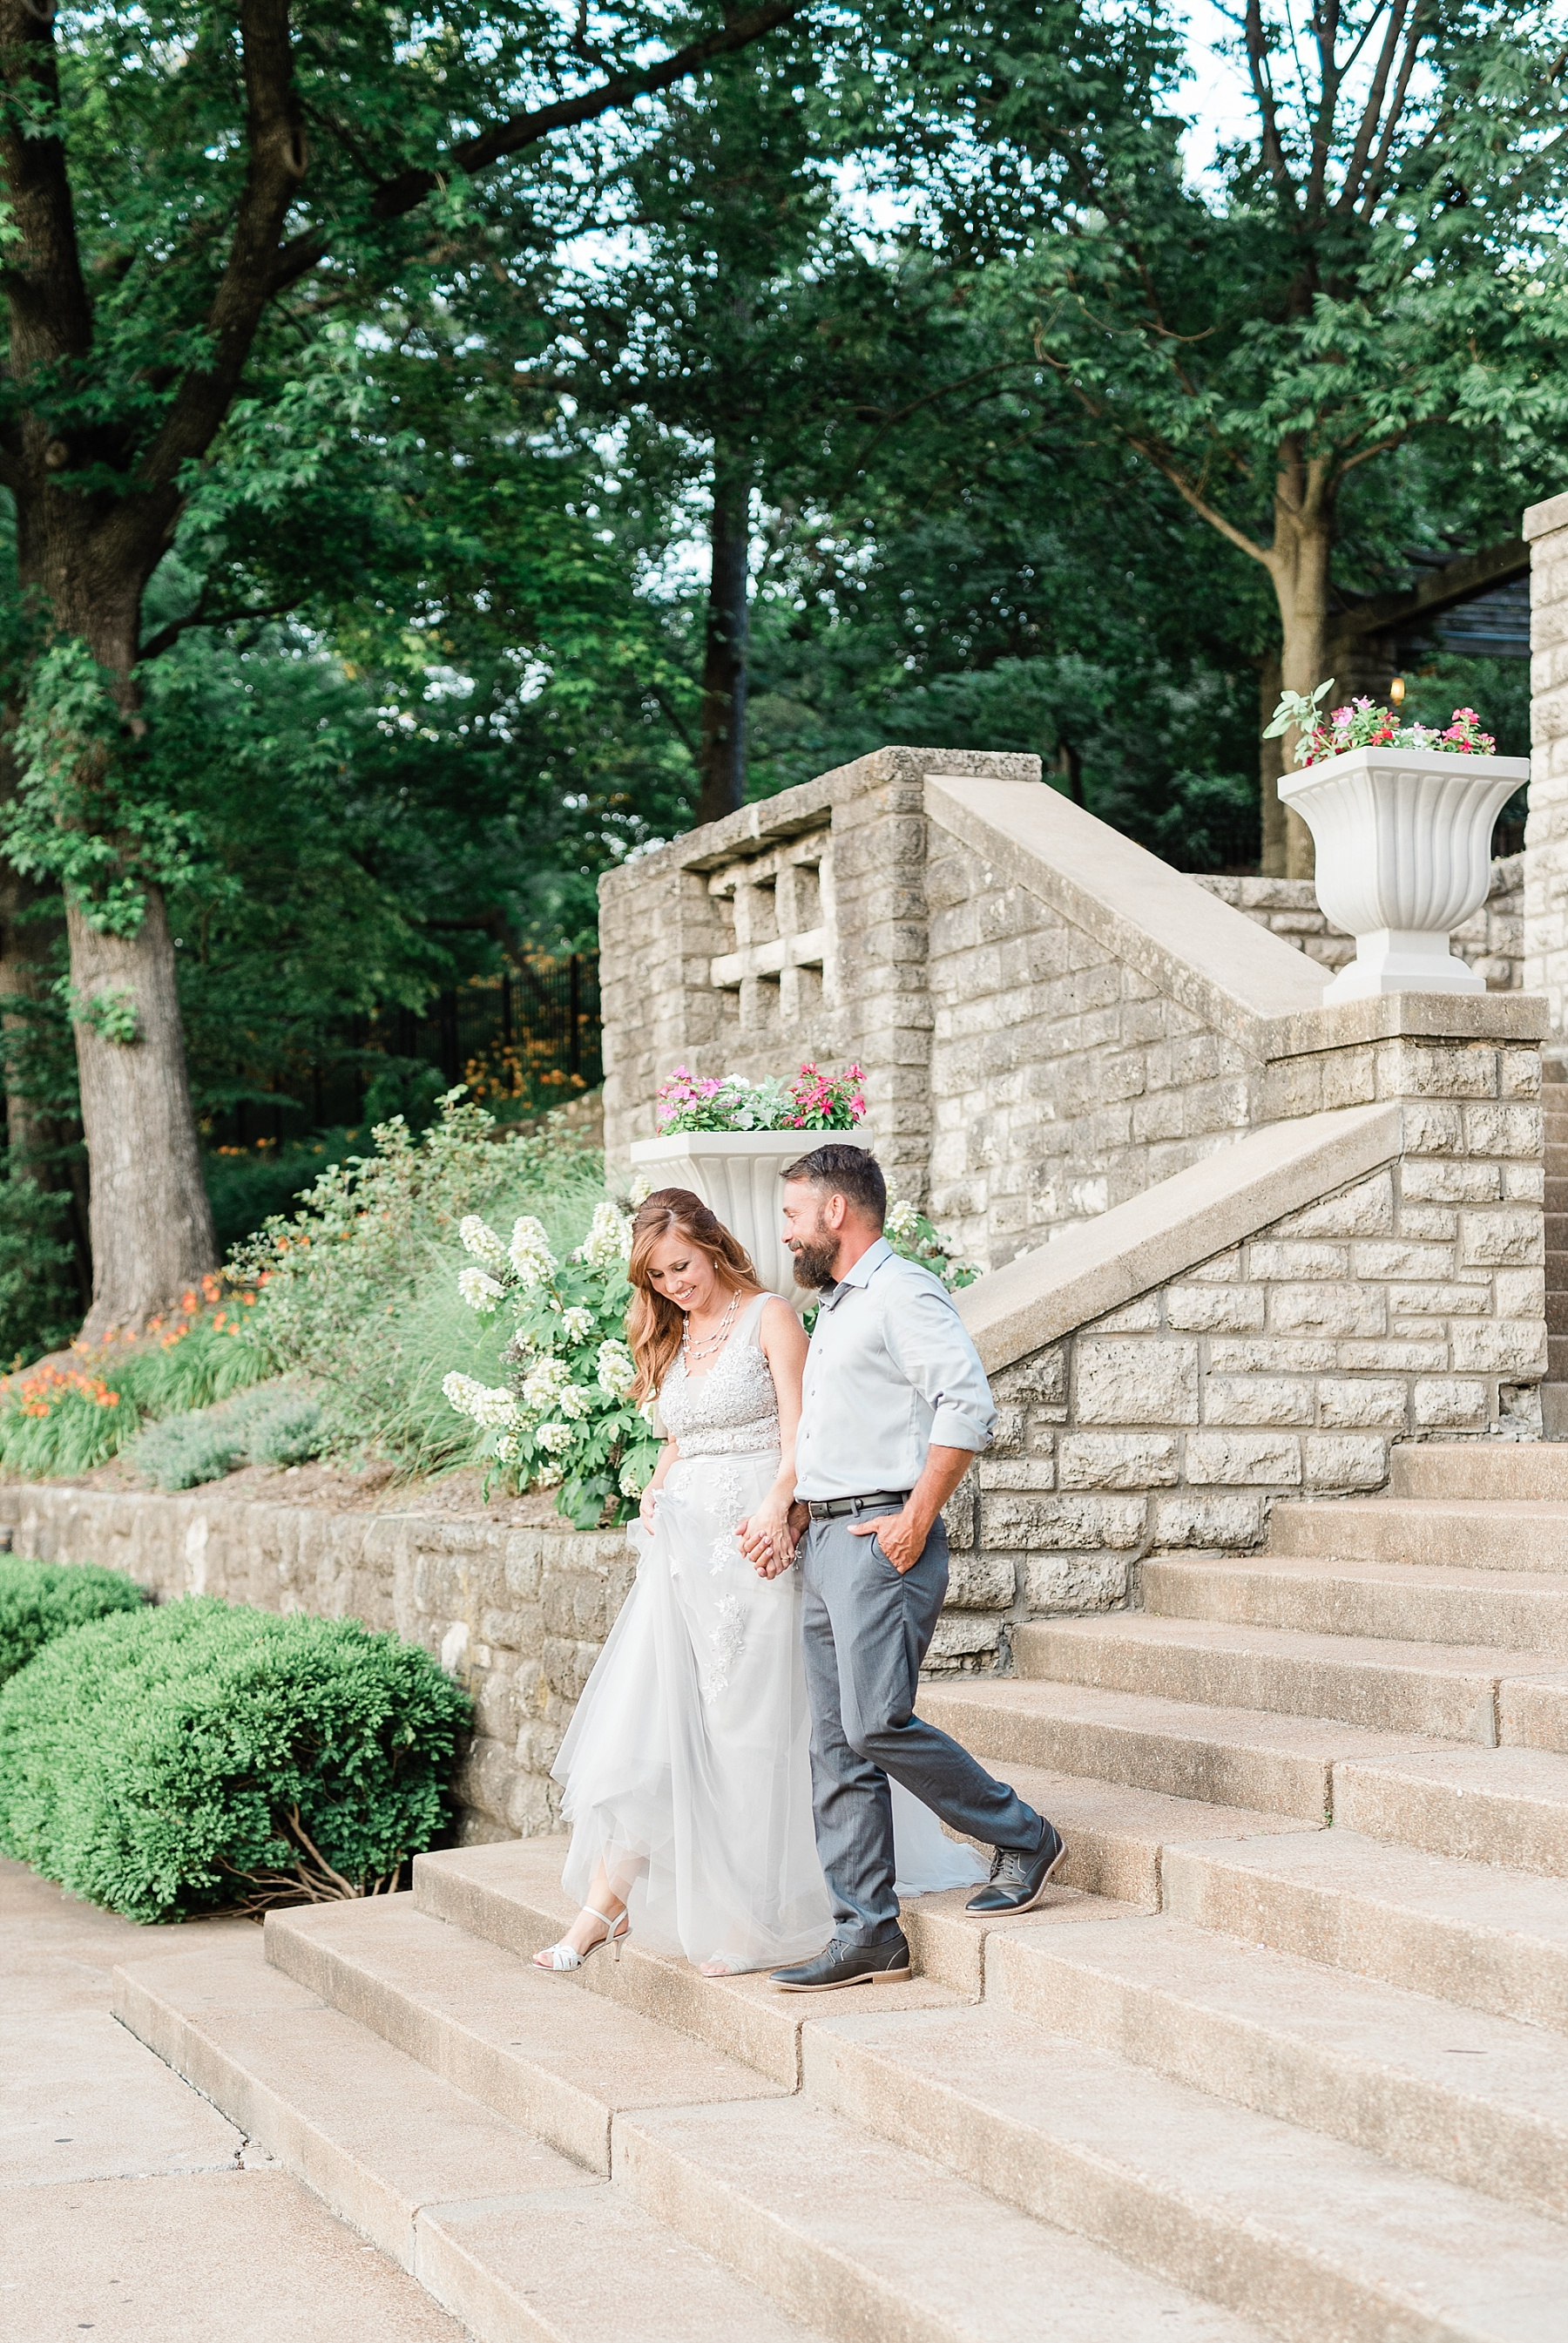 Chuck and Julie 25th Anniversary in Silver at Missouri Governor's Gardens by Kelsi Kliethermes Photography_0008.jpg